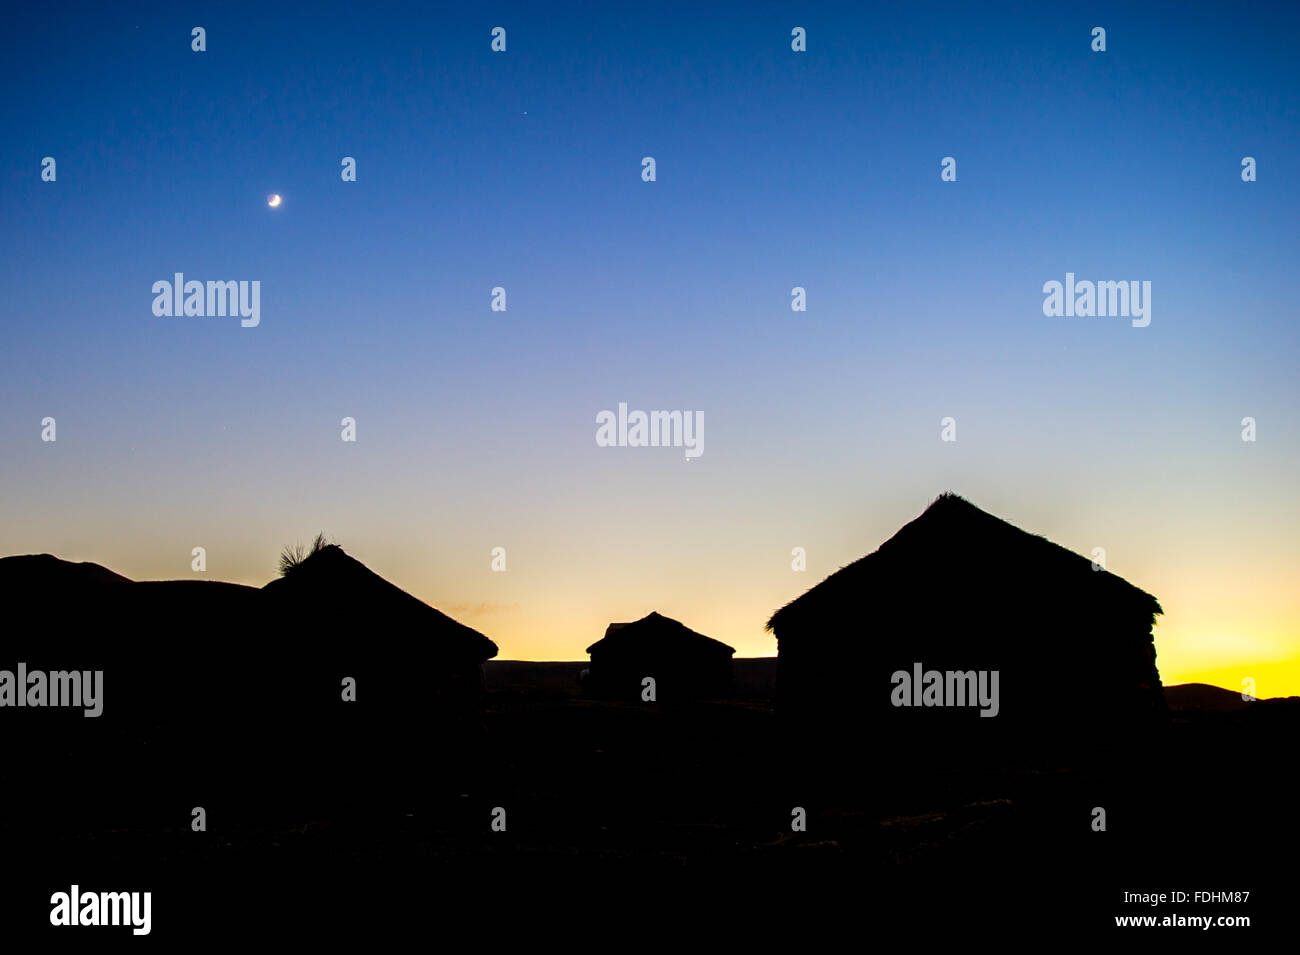 Silhouette of village huts in front of the sunset with the moon rising in Lesotho, Africa - Stock Image